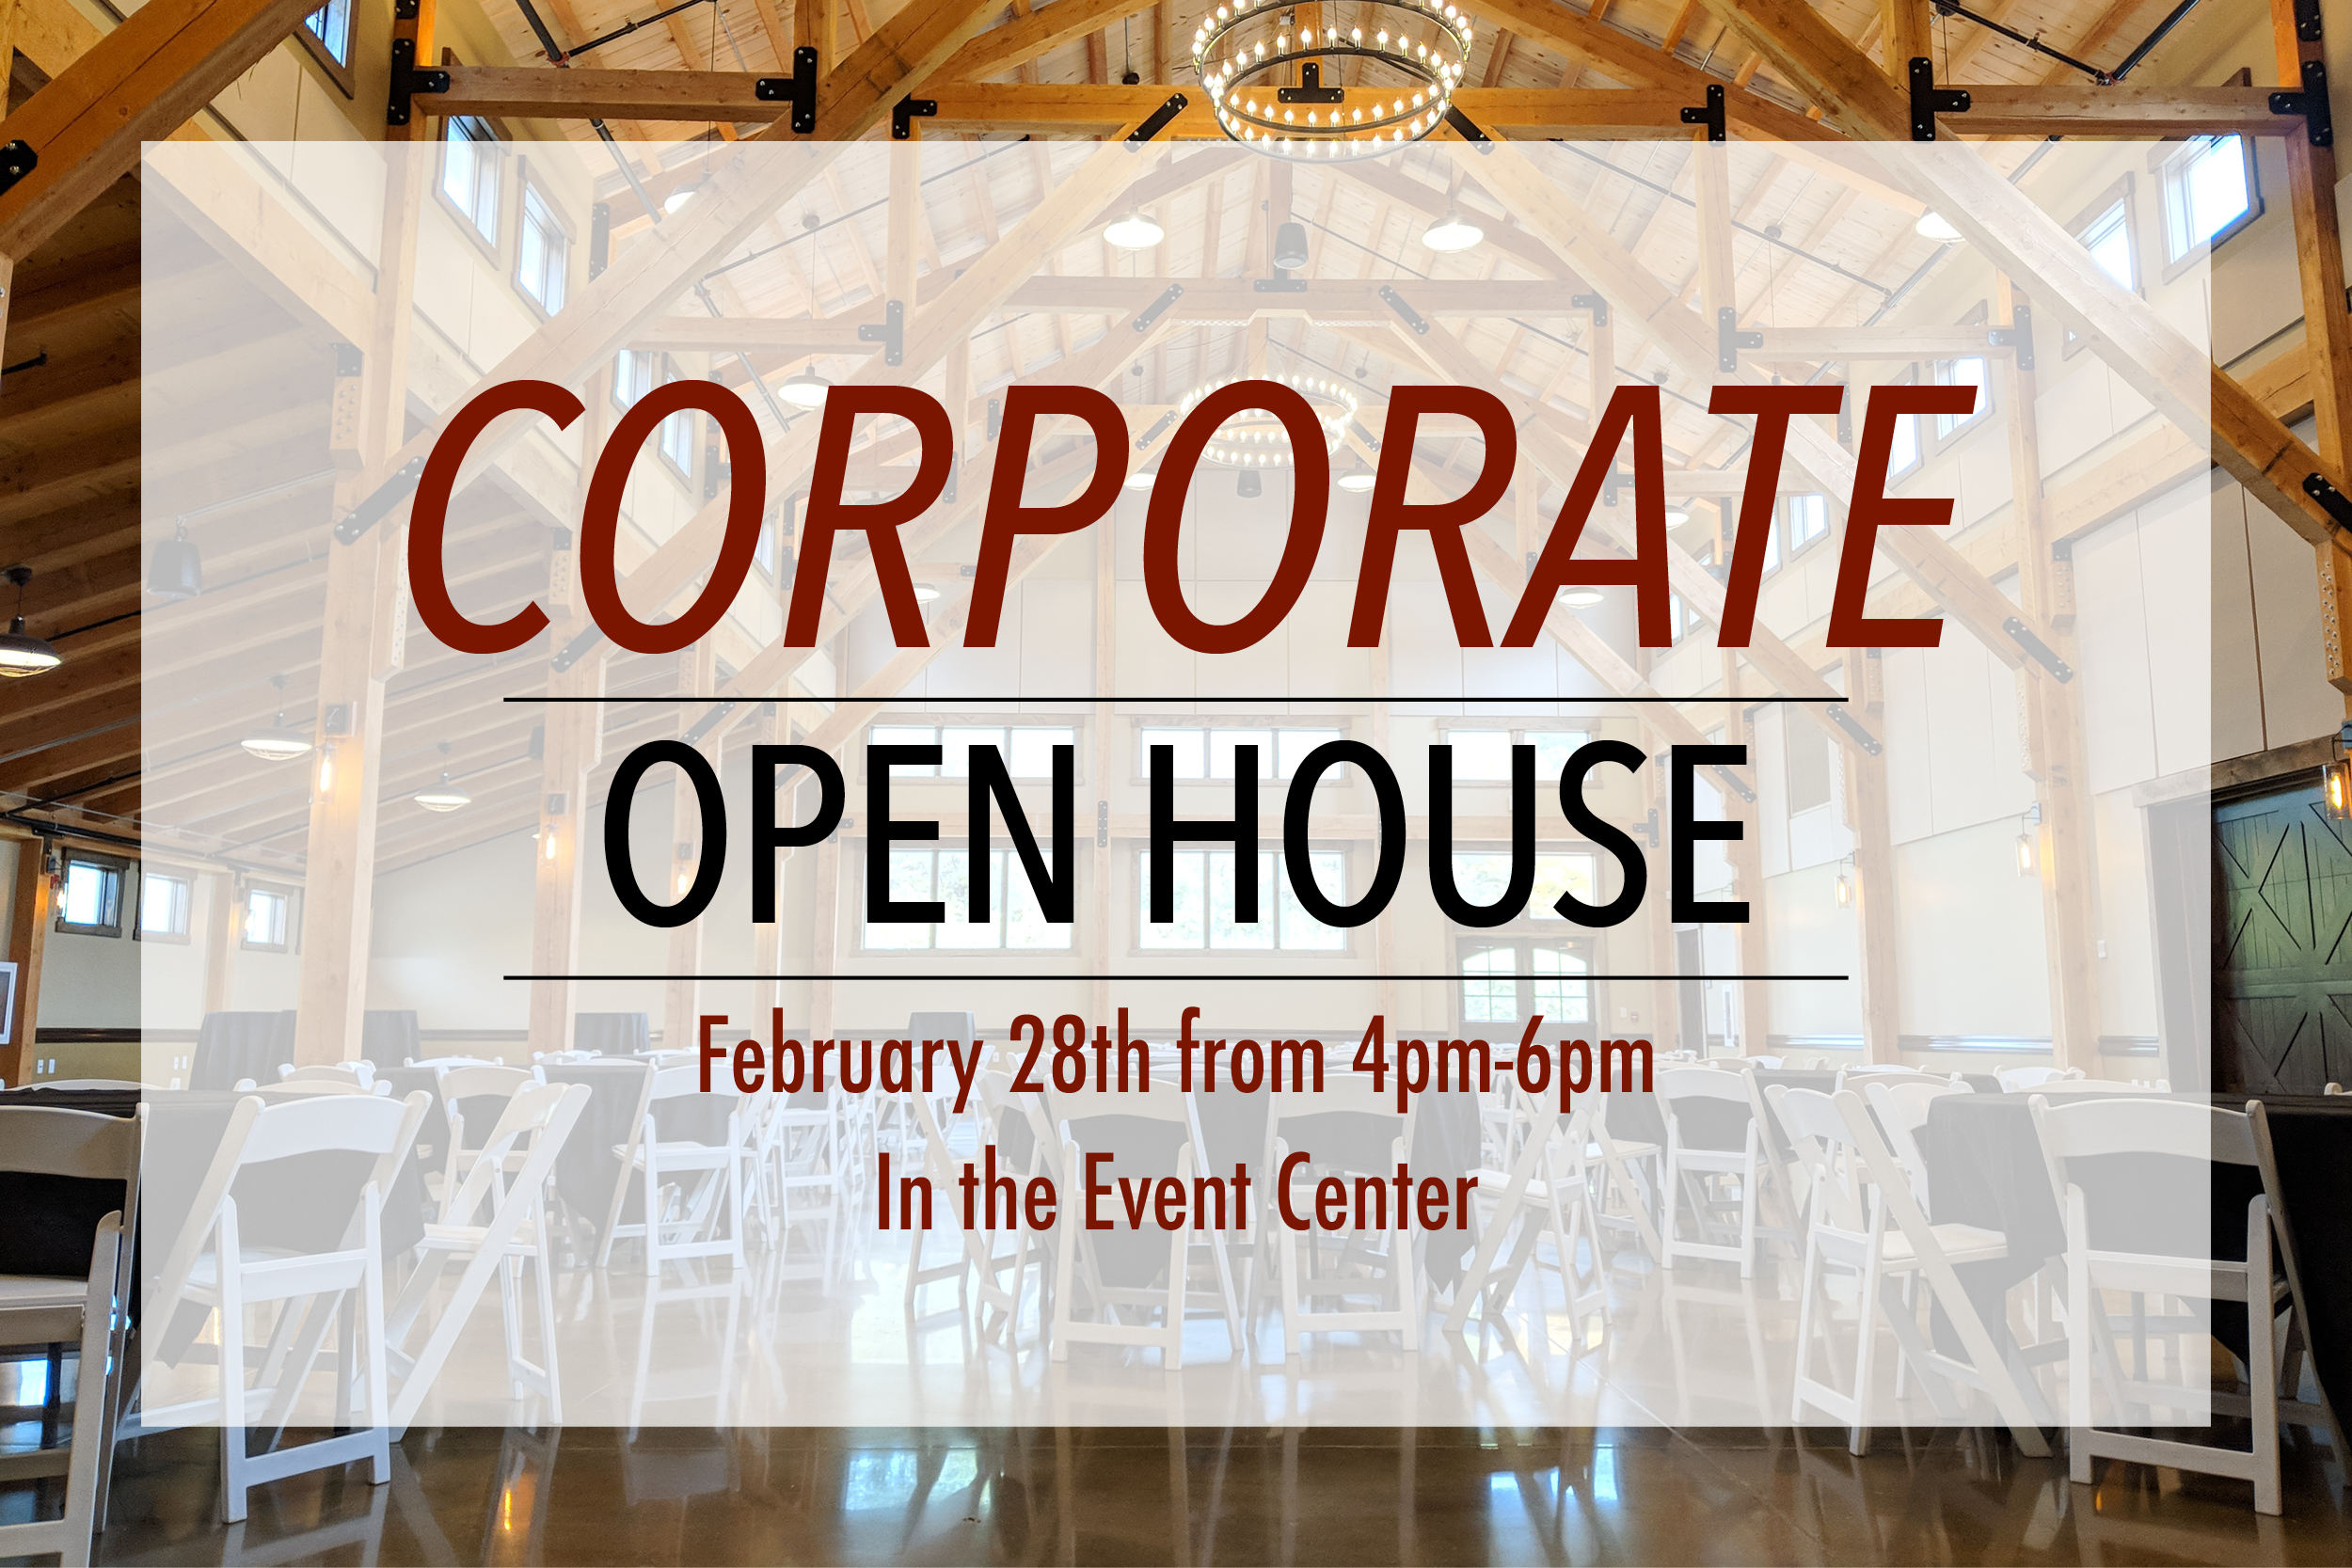 Corporate open house